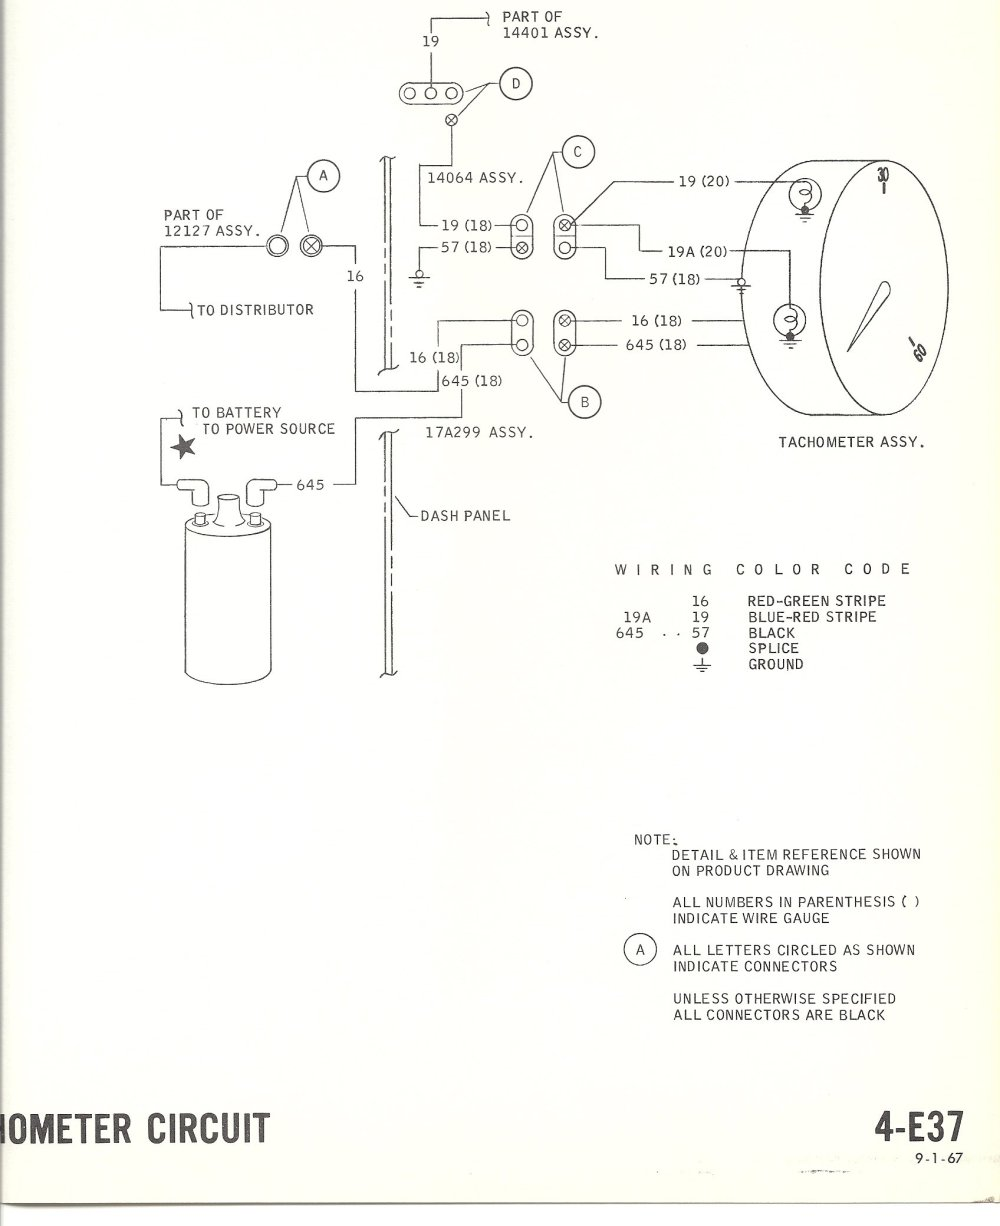 medium resolution of electric tachometer wiring wiring diagram sheetwrg 2228 electric tachometer wiring diagram 1968 mustang wiring diagrams